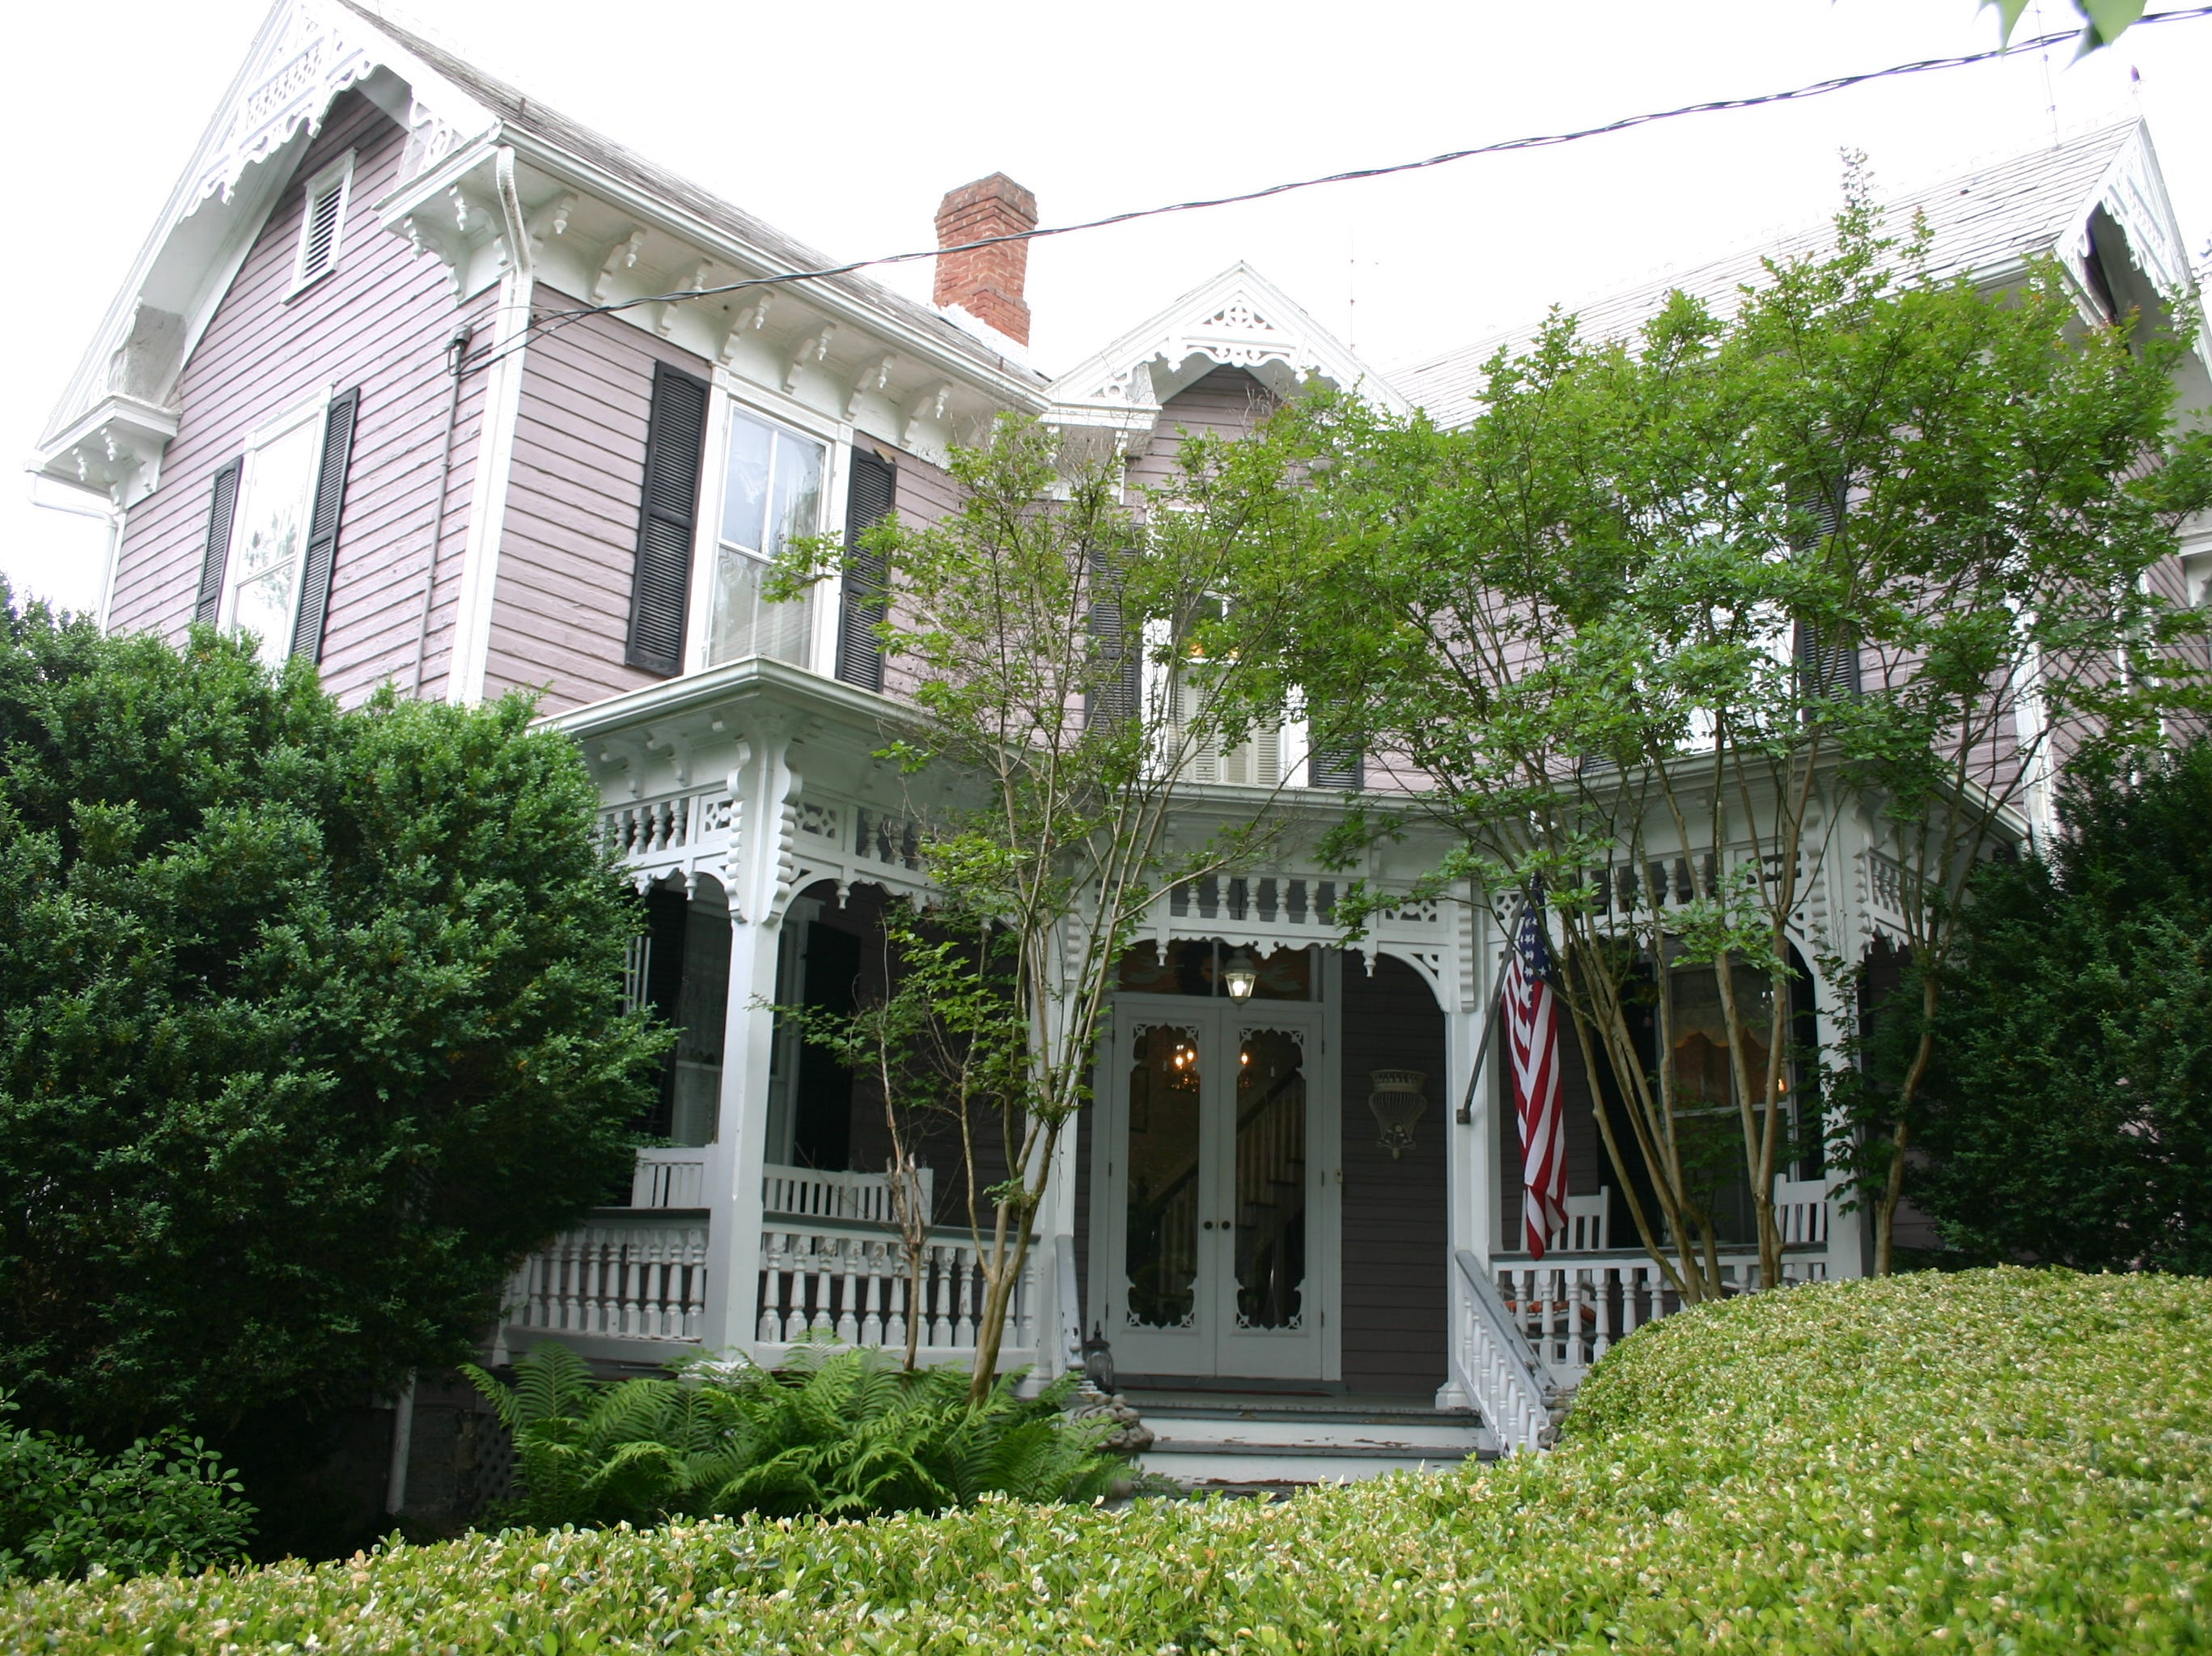 This 1896 Victorian home, most recently used as a bed and breakfast, is for sale for $384,900 at 1224 Keezletown Road in Weyers Cave.